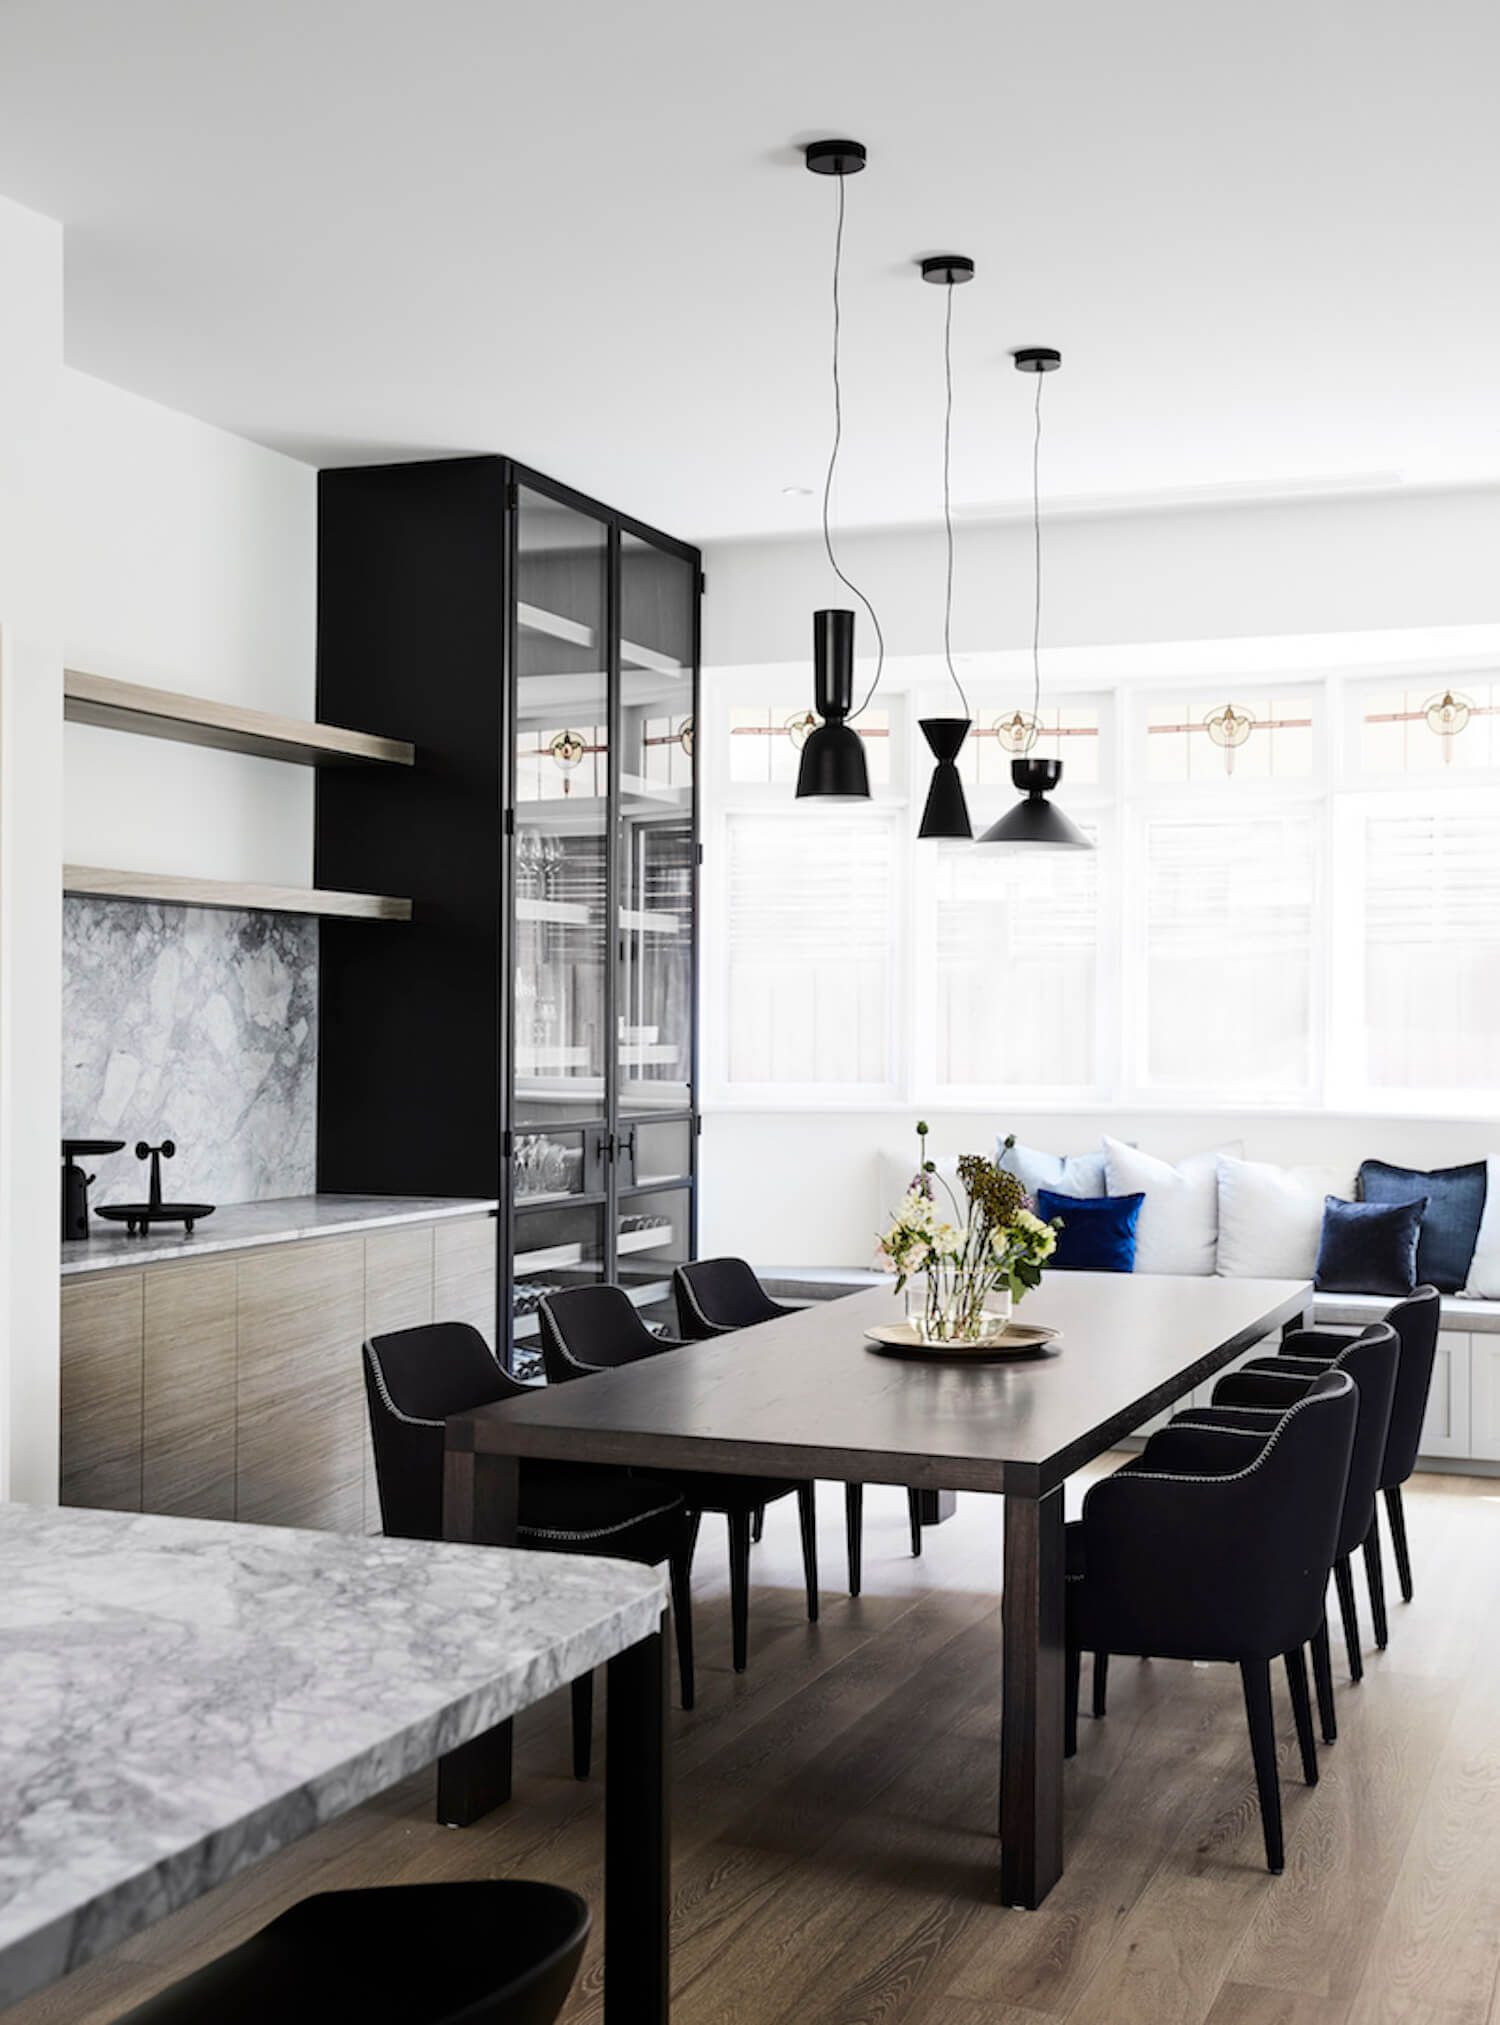 Dining room elsternwick home by mim design est living